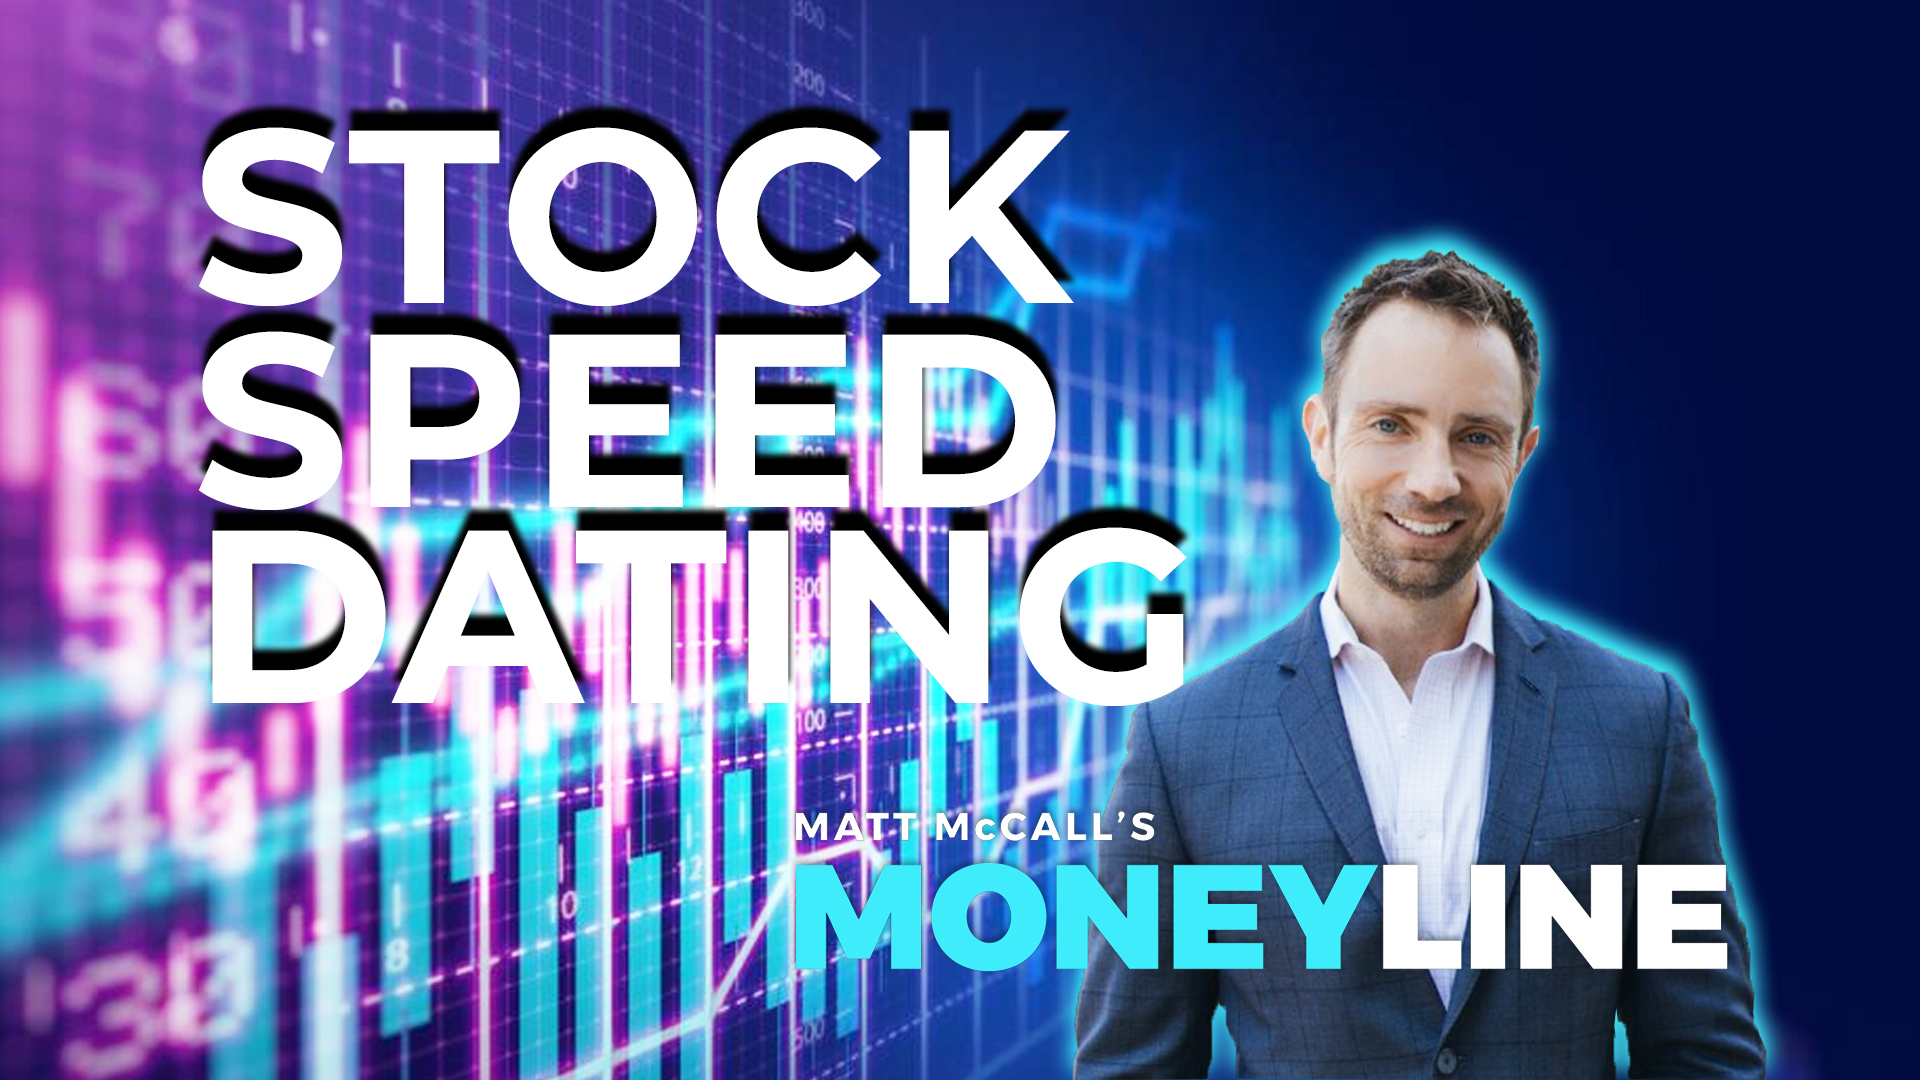 Matt McCall's Moneyline: Stock Speed Dating